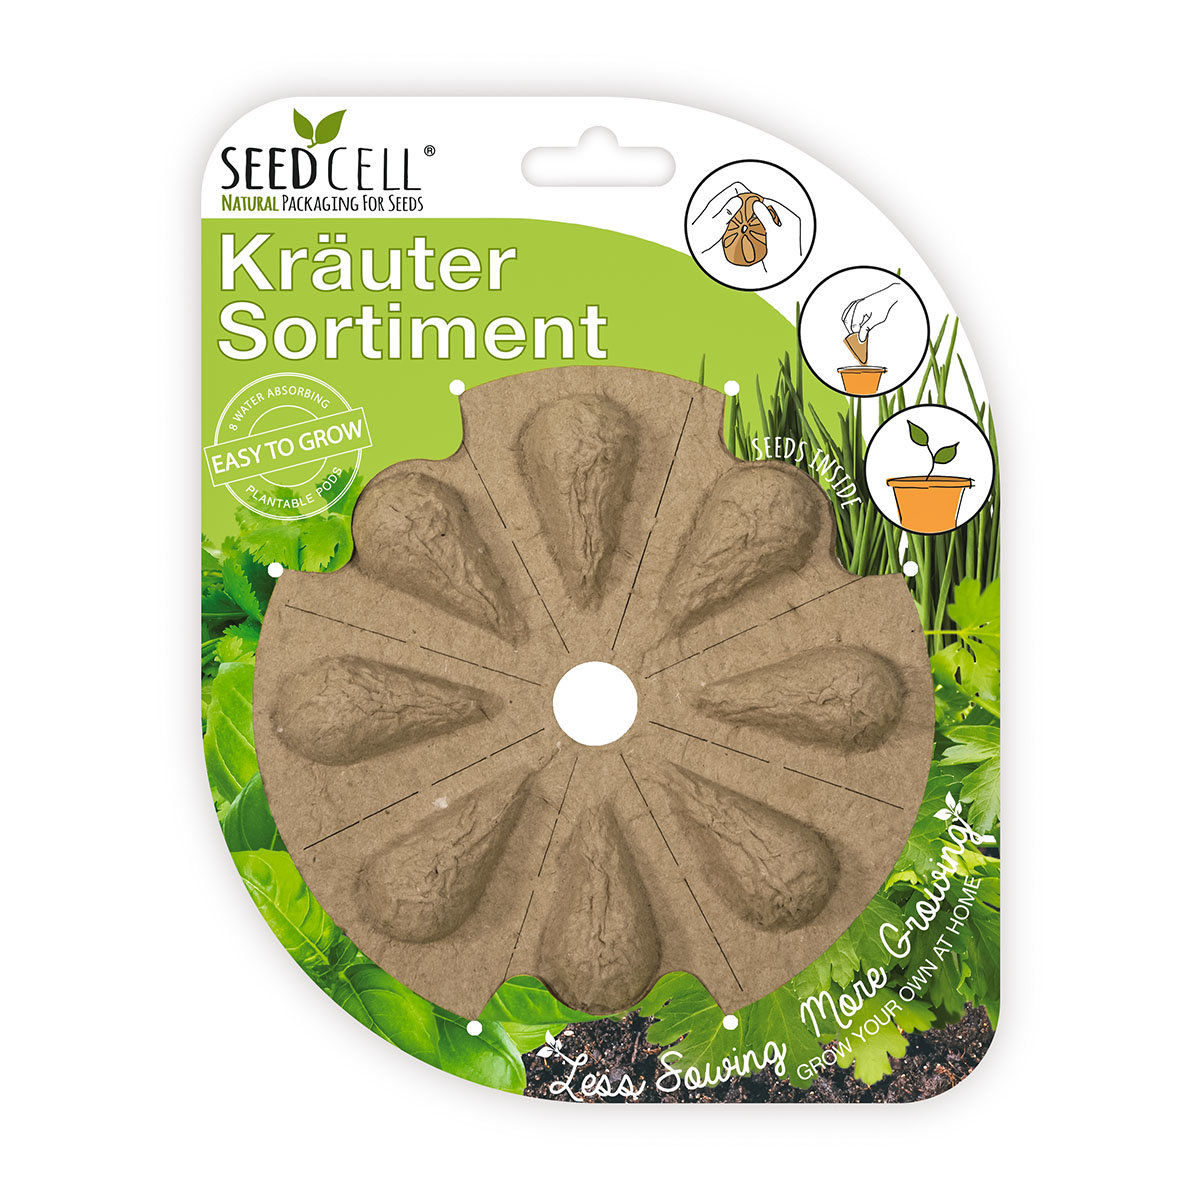 Seedcell Kräuter-Sortiment, 8 Seedcells